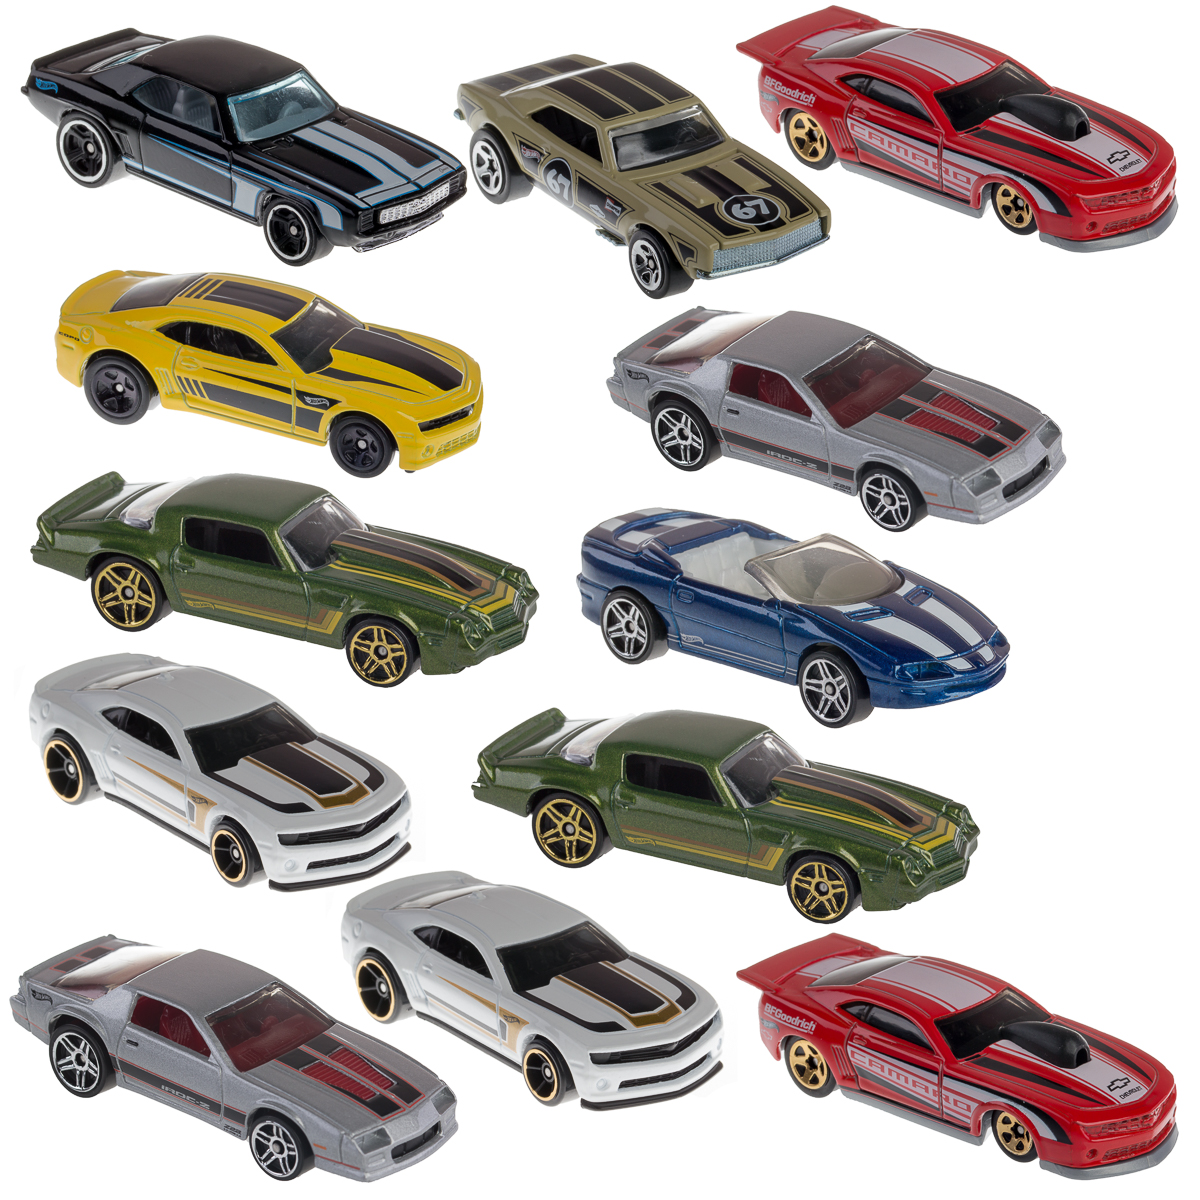 Hot Wheels (12 Pack) Chevy Camaro Diecast Car 1 64 Model Toys 50th Anniversary 1967-2013... by